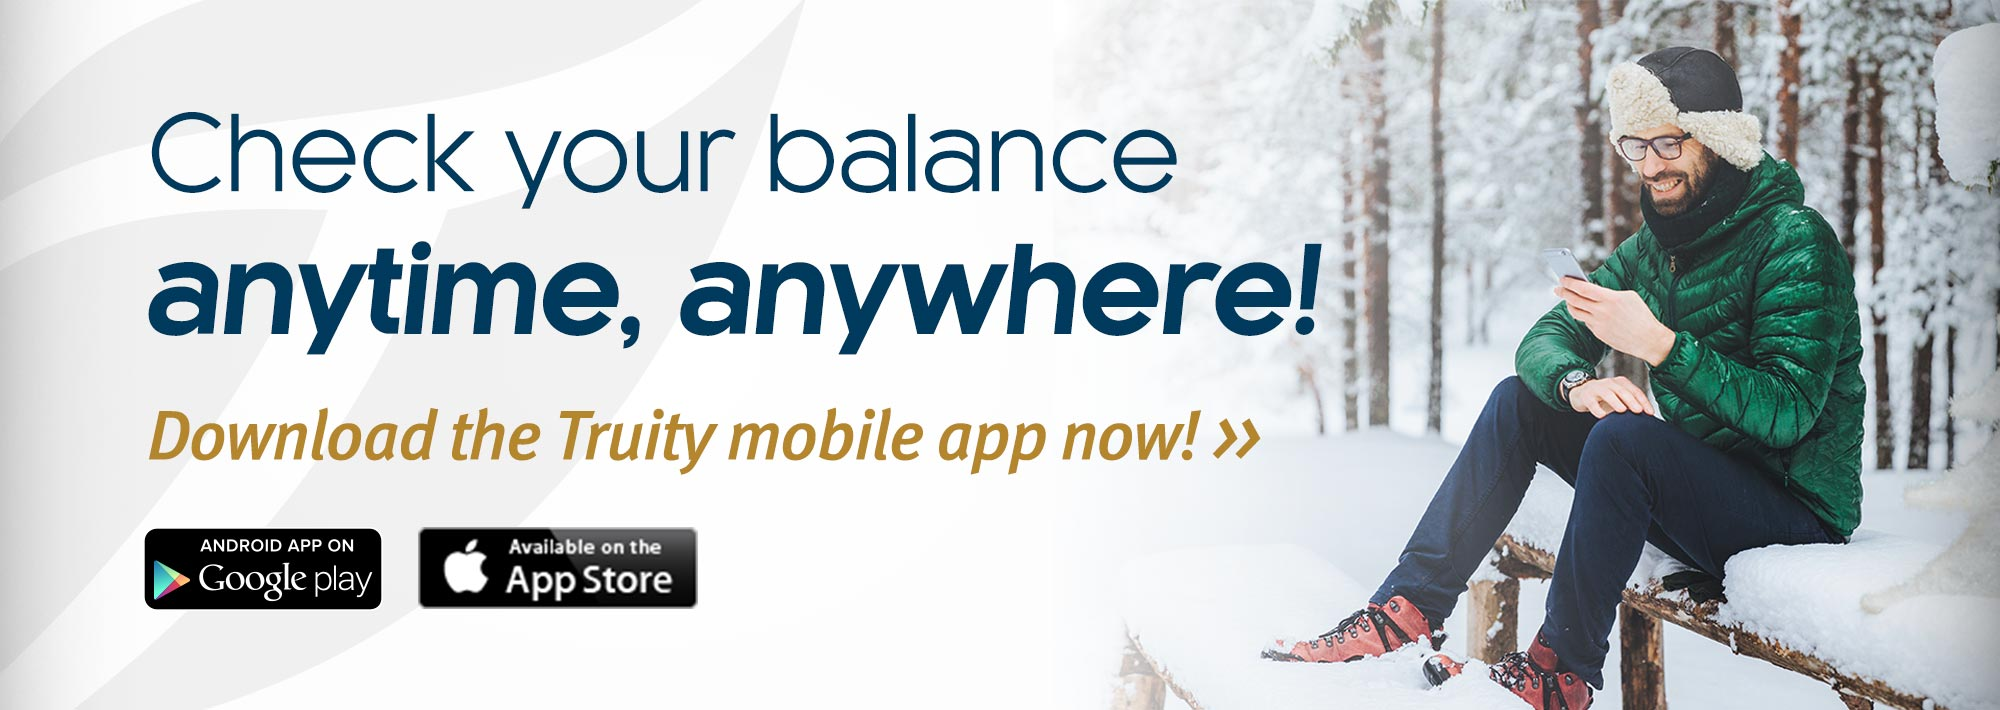 Check your balances, anytime, anywhere! Download the Truity mobile app now!